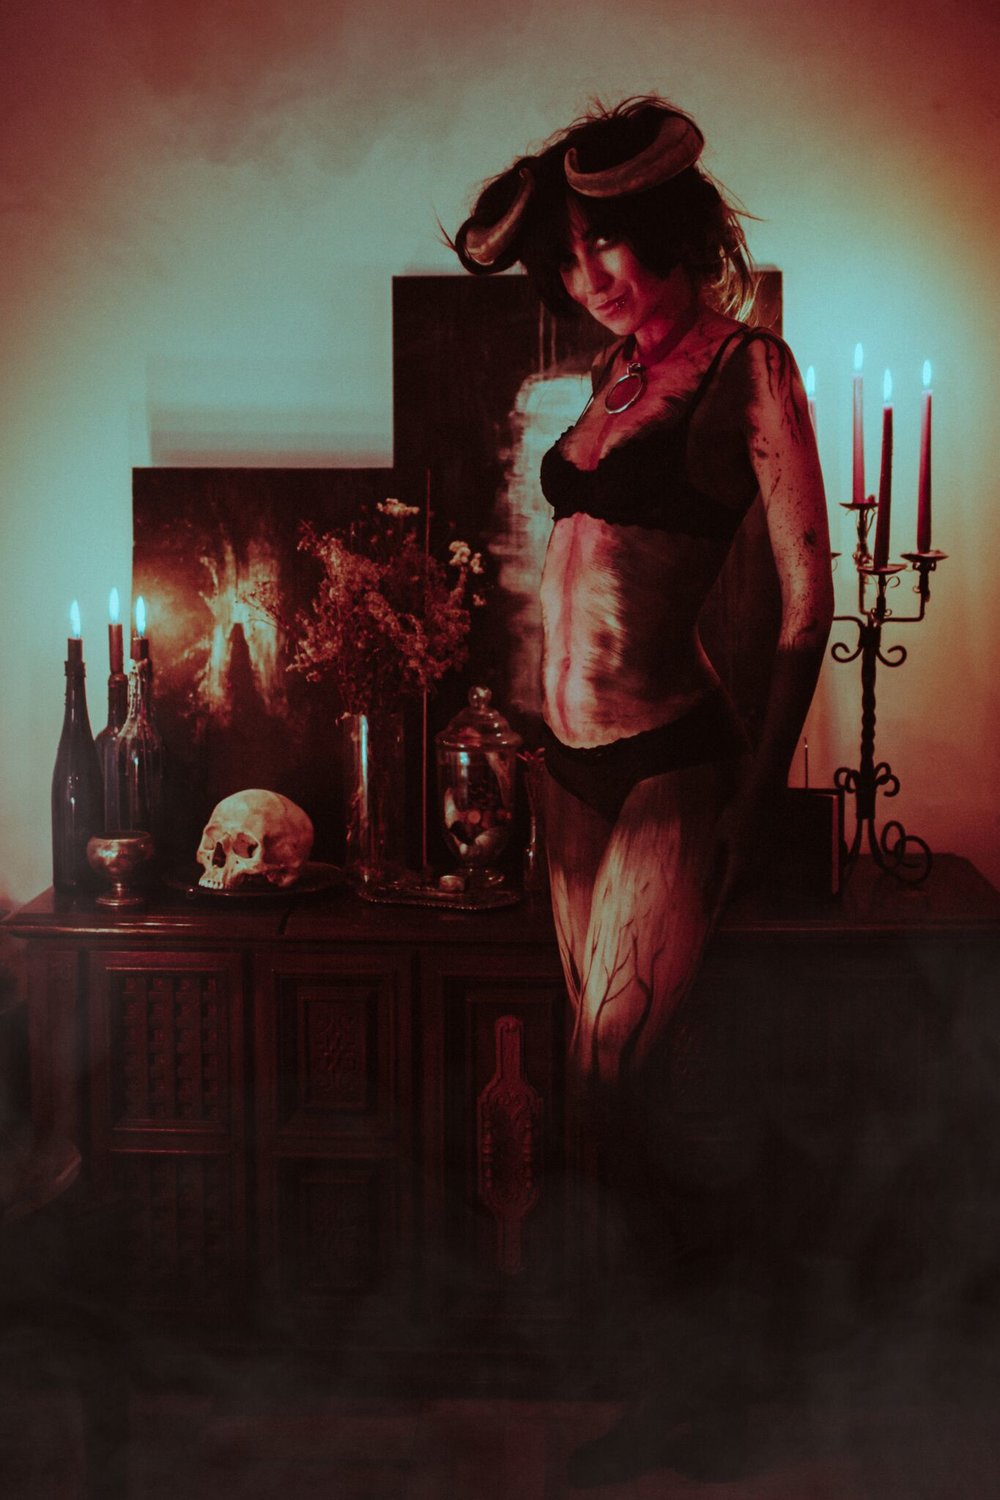 katrin-albert-photography-mccal-strange-halloween-selects-highres-18_preview.jpeg